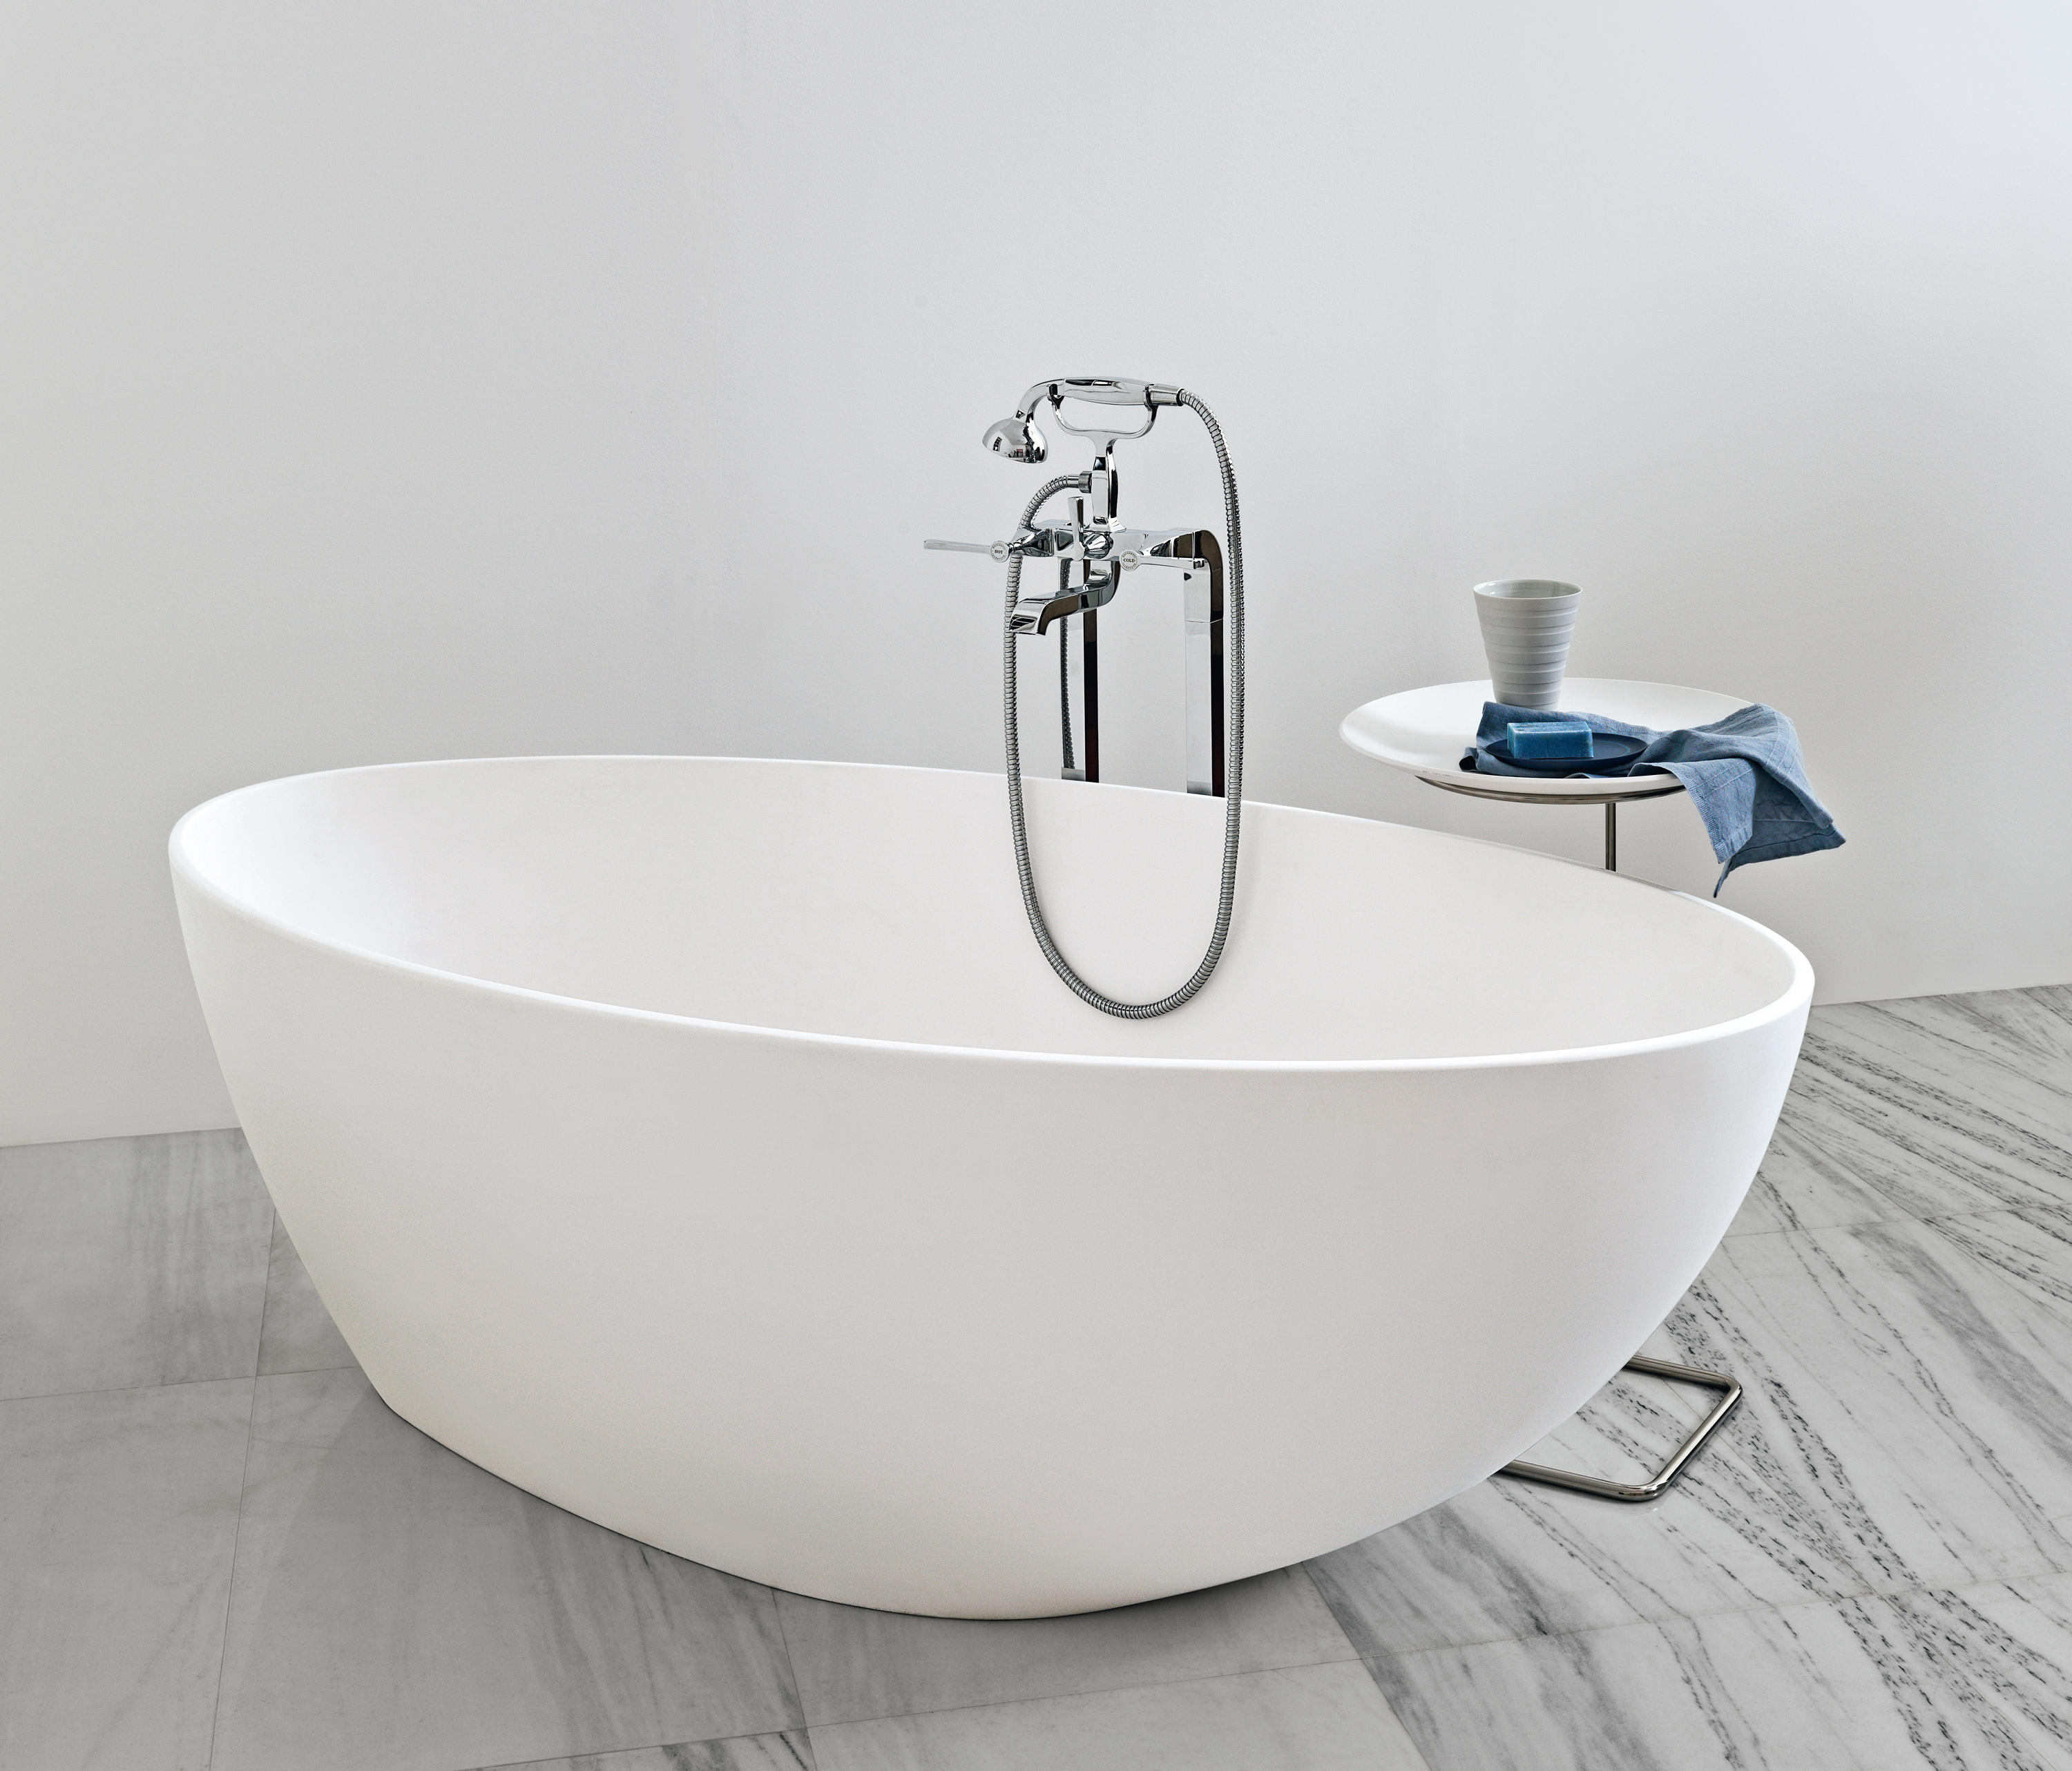 MUSE BATH-TUB - Bathtubs from Kos | Architonic